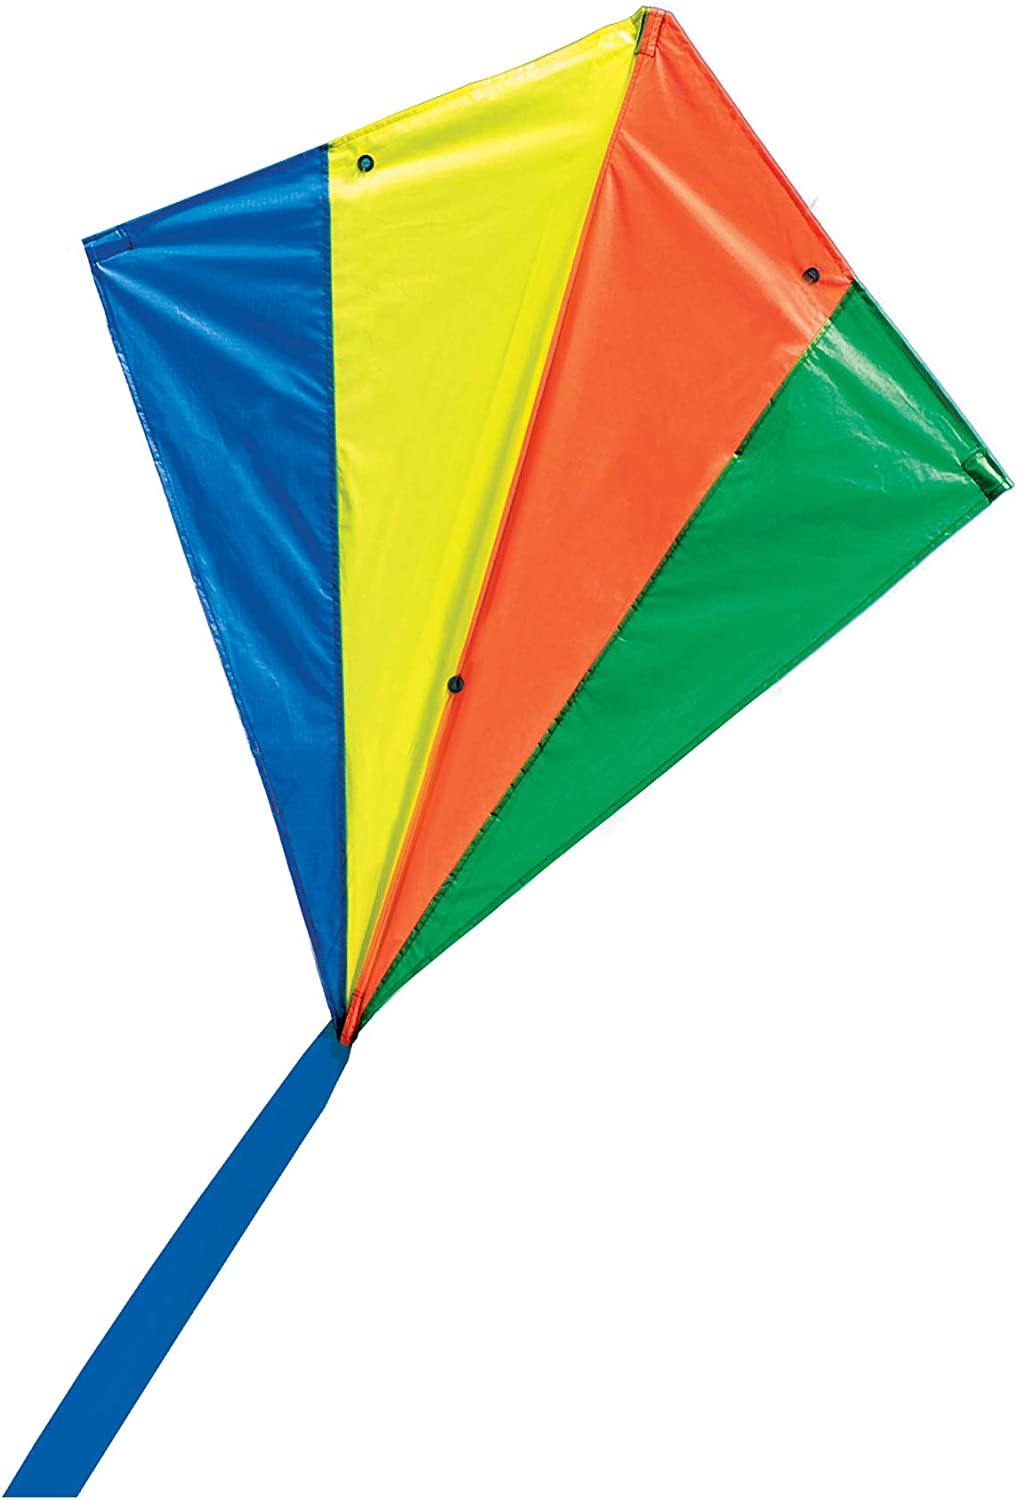 Colorful Rainbow Kite With Winder Board String Outdoor Children Kids Toy Game